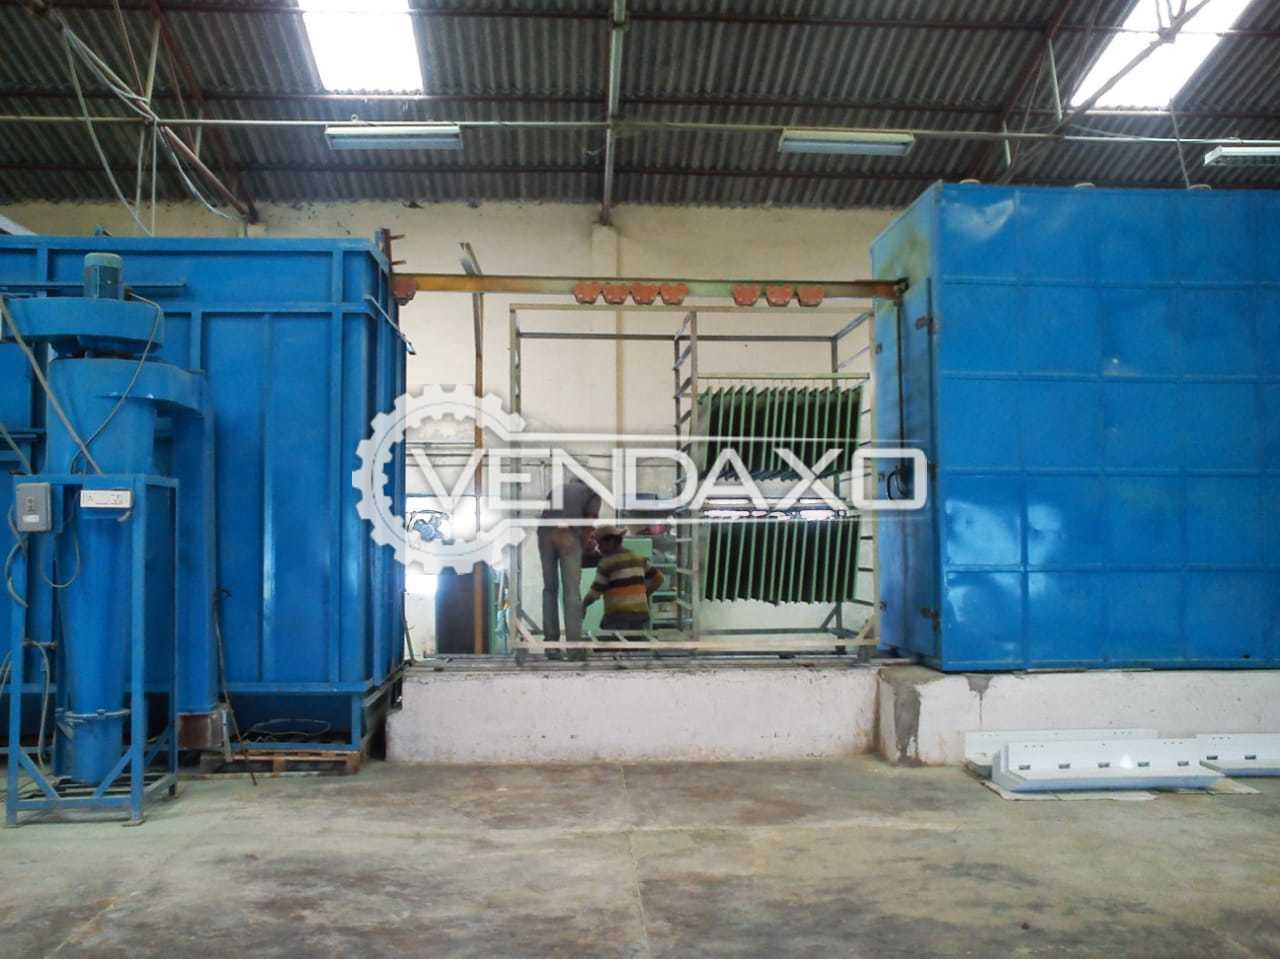 For Sale Used Gallant IVISTA Powder Coating Plant - 2013 Model